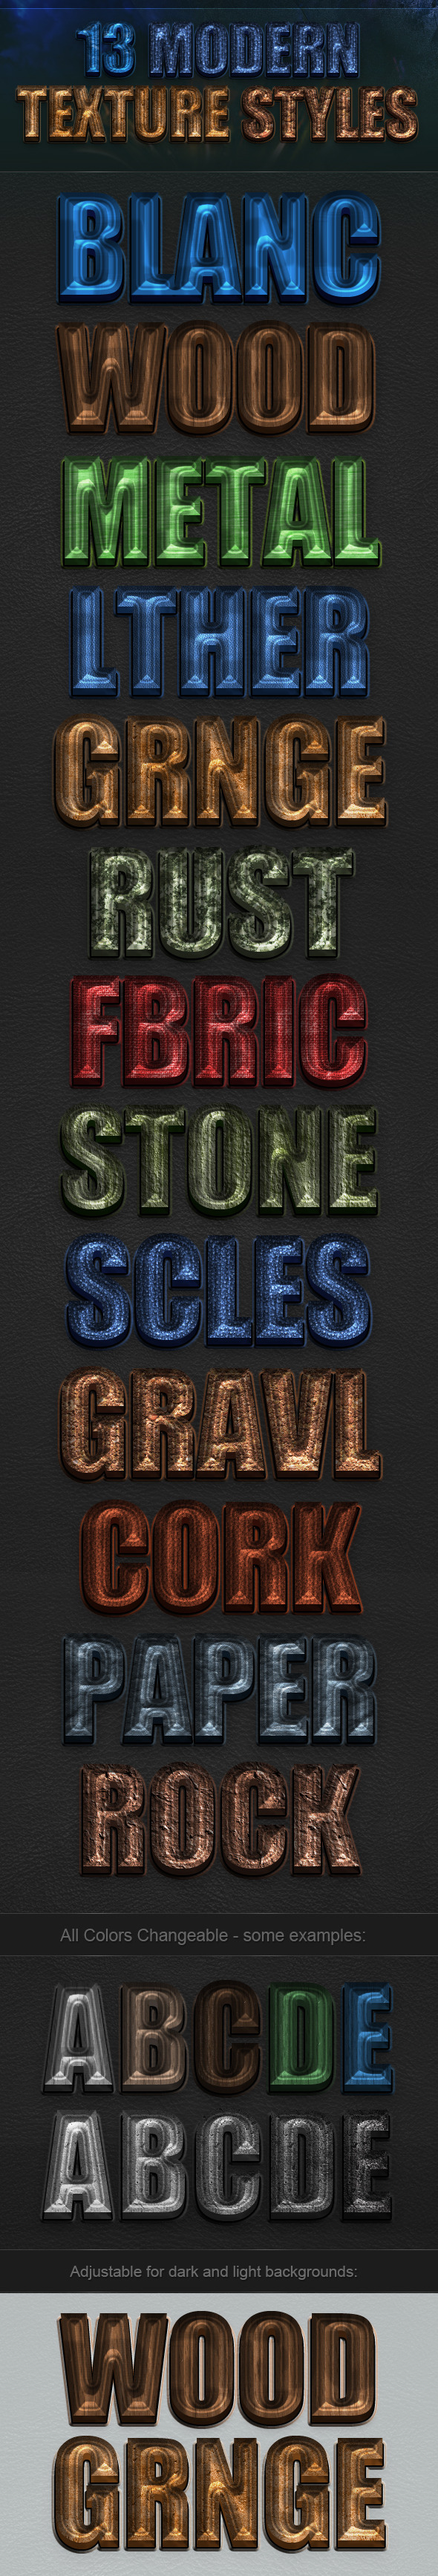 13 Modern Texture Styles - Text Effects Styles